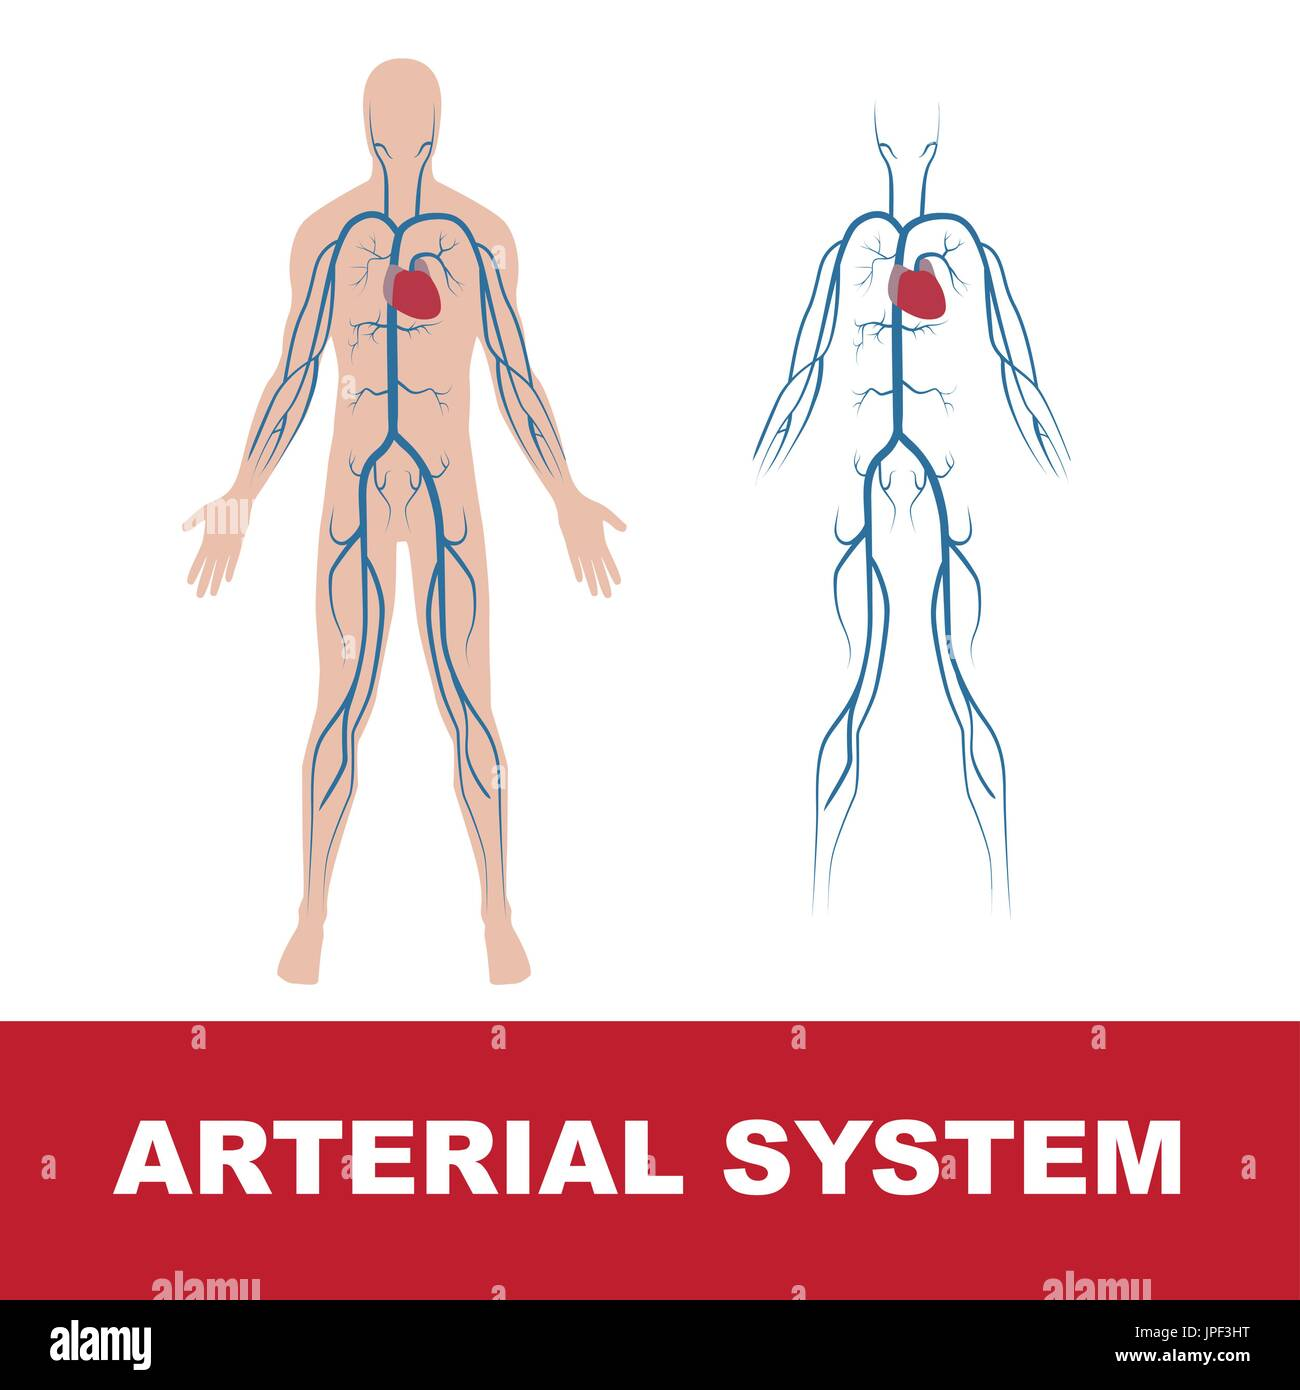 vector illustration of human arterial system isolated on white. Heart and main arteries of human body. Both, with body shape and without. - Stock Image